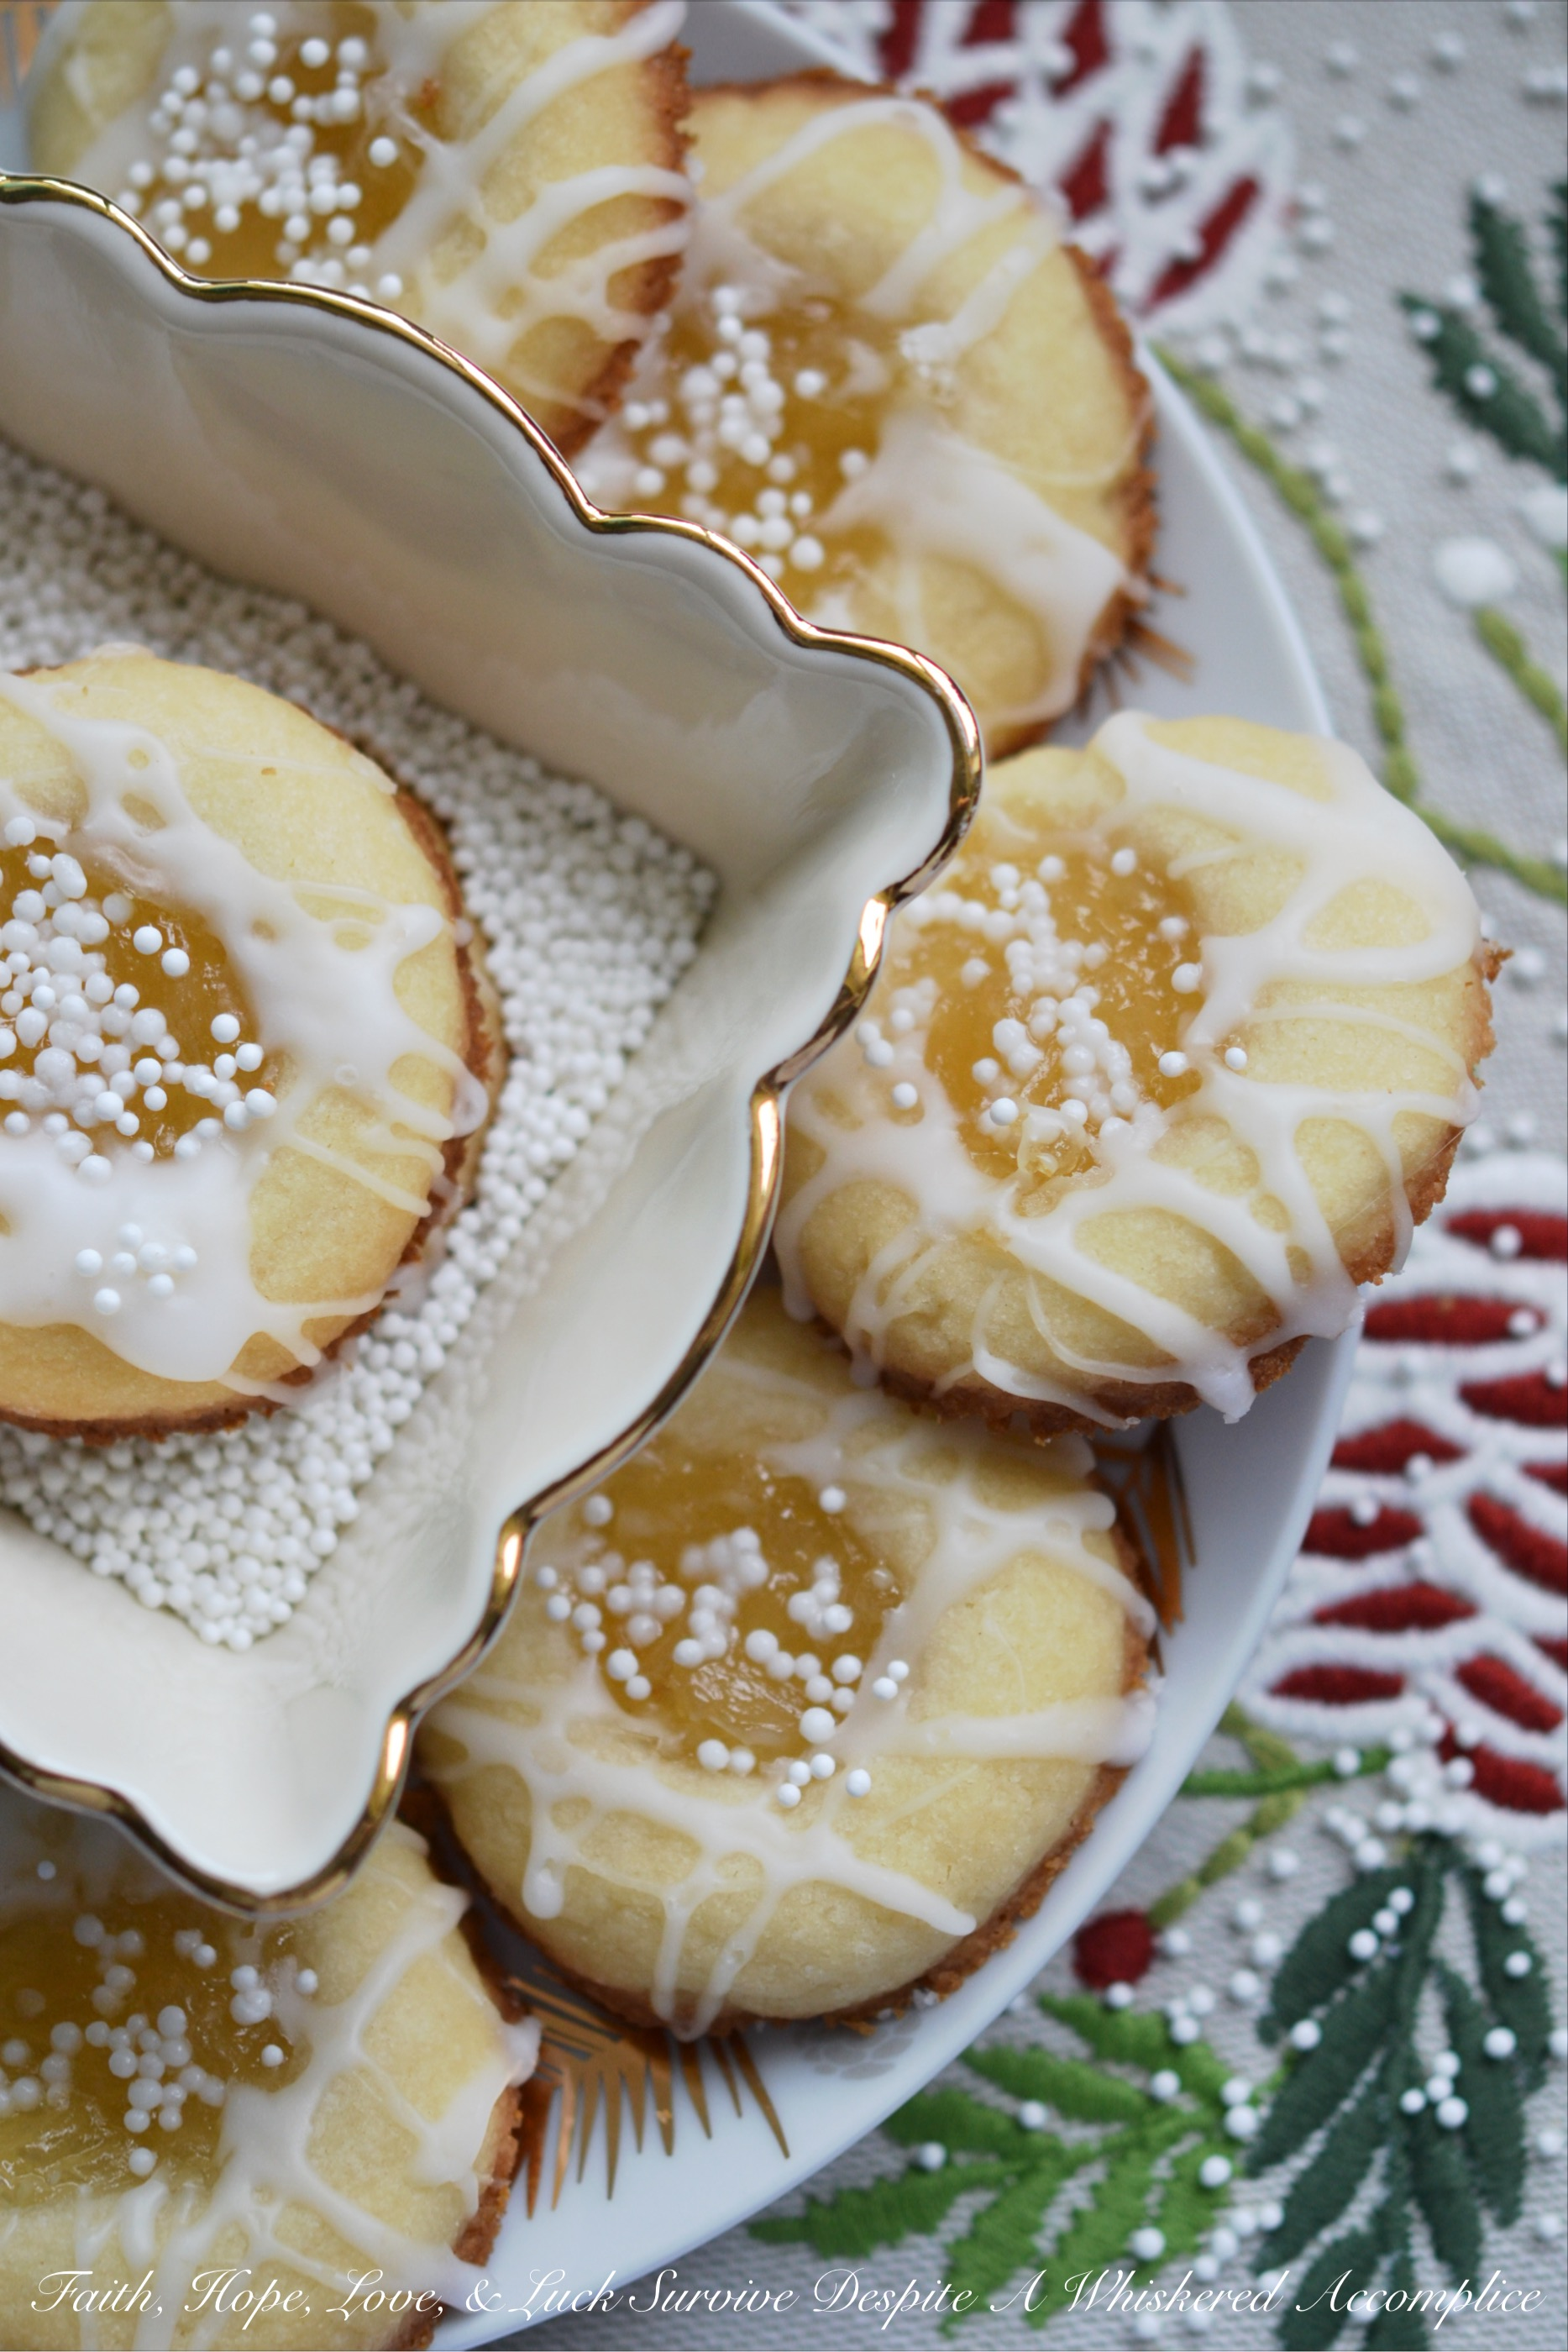 Malibu Winter Thumbprint Cookies